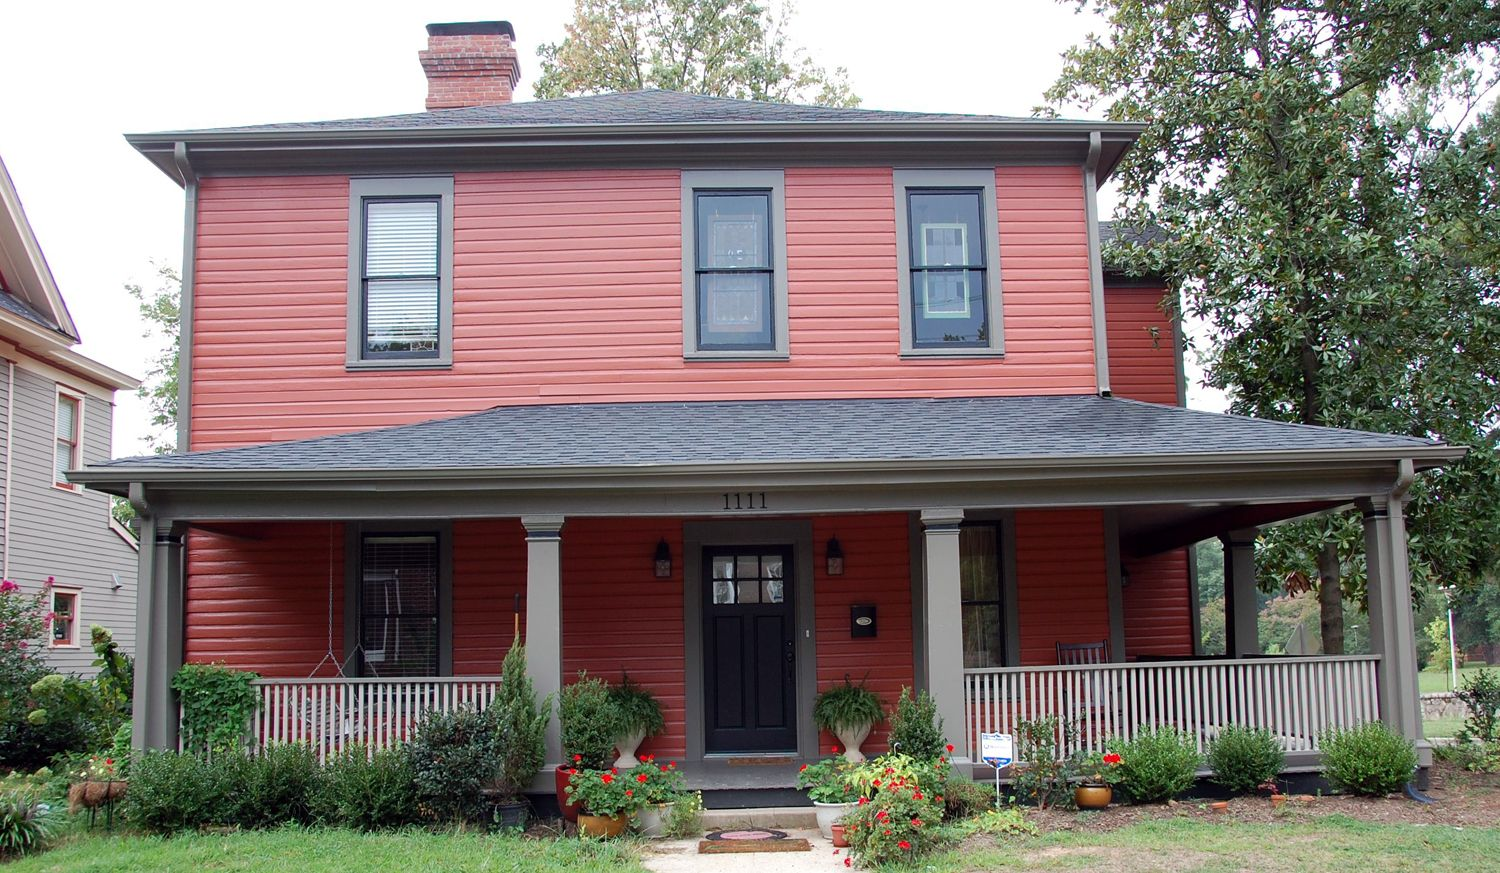 Craftsman exterior house paint ideas - House Craftsman Exterior Paint Color Combinations